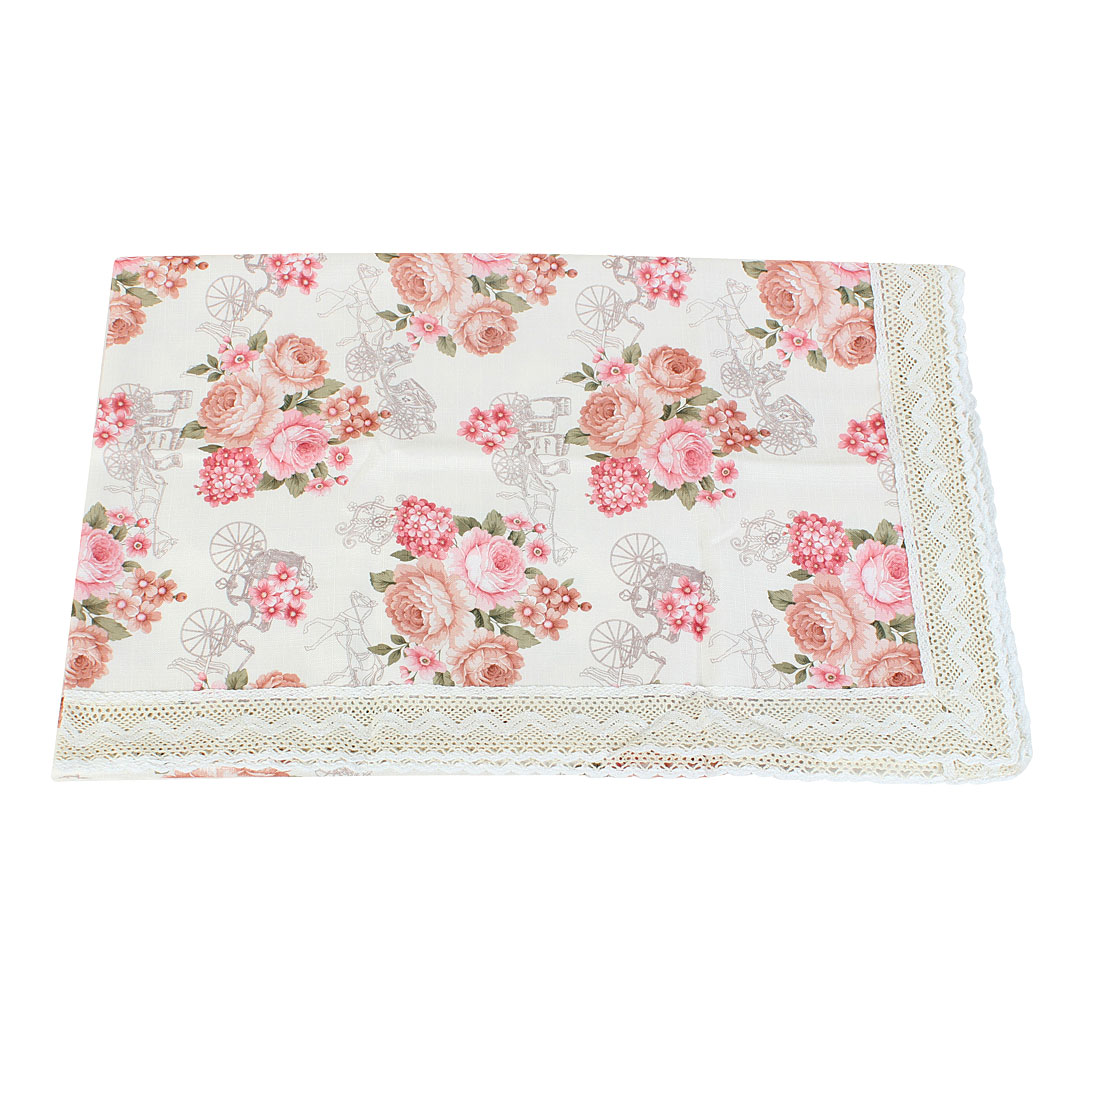 Wedding Party Decor Flower Carriage Print Tablecloth Light Pink 150 x 150cm